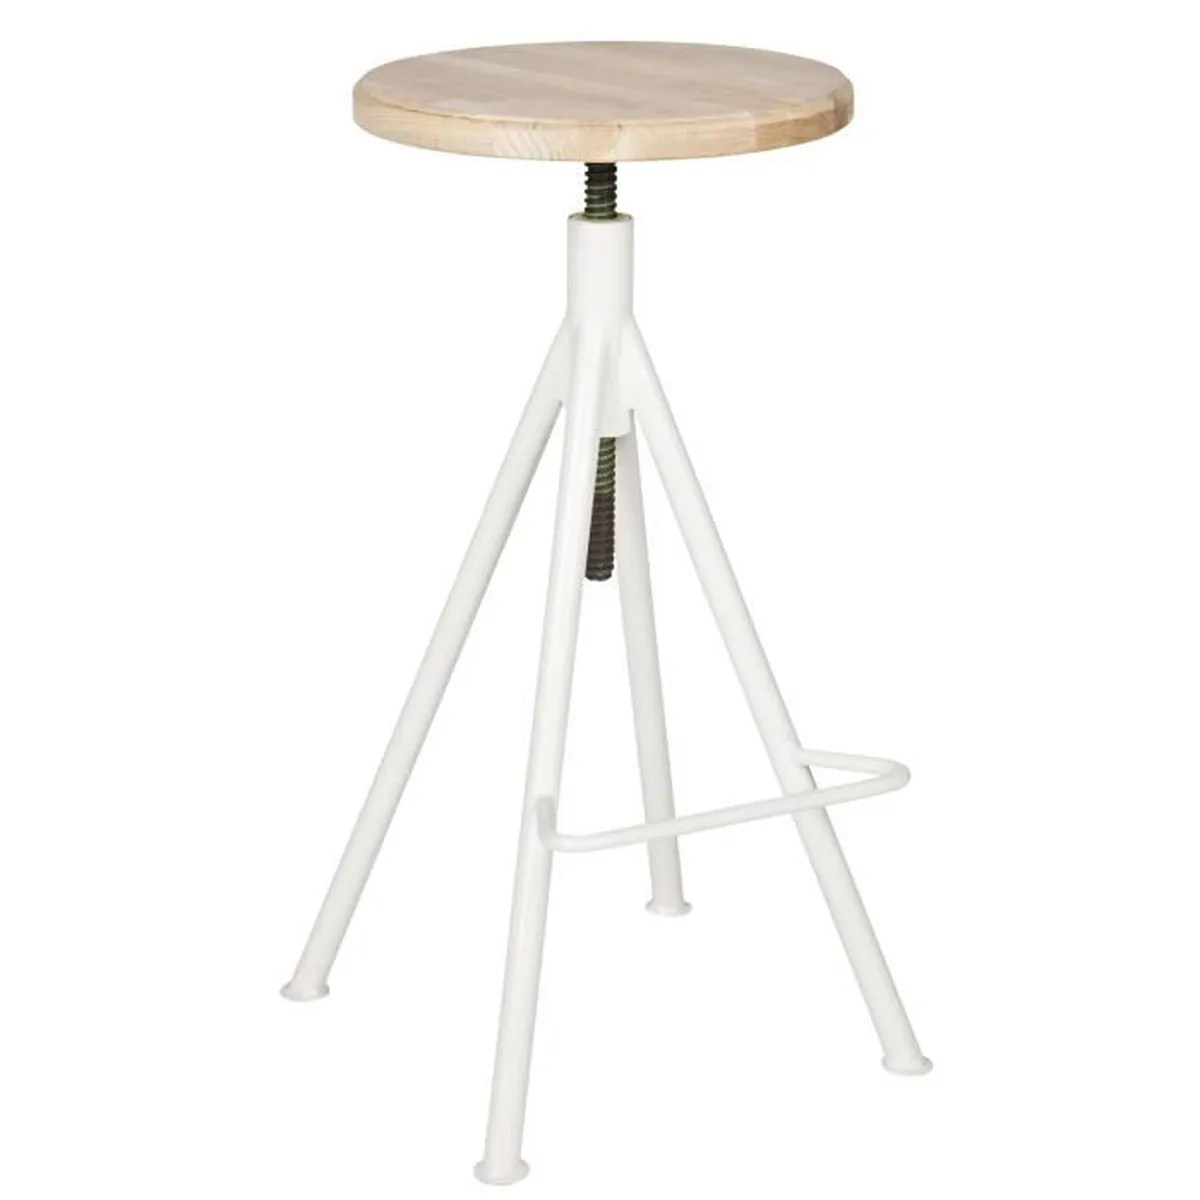 Tabouret Bois Blanc Great Tabouret De Bar Bois Blanc With Tabouret Bar Bois Blanc